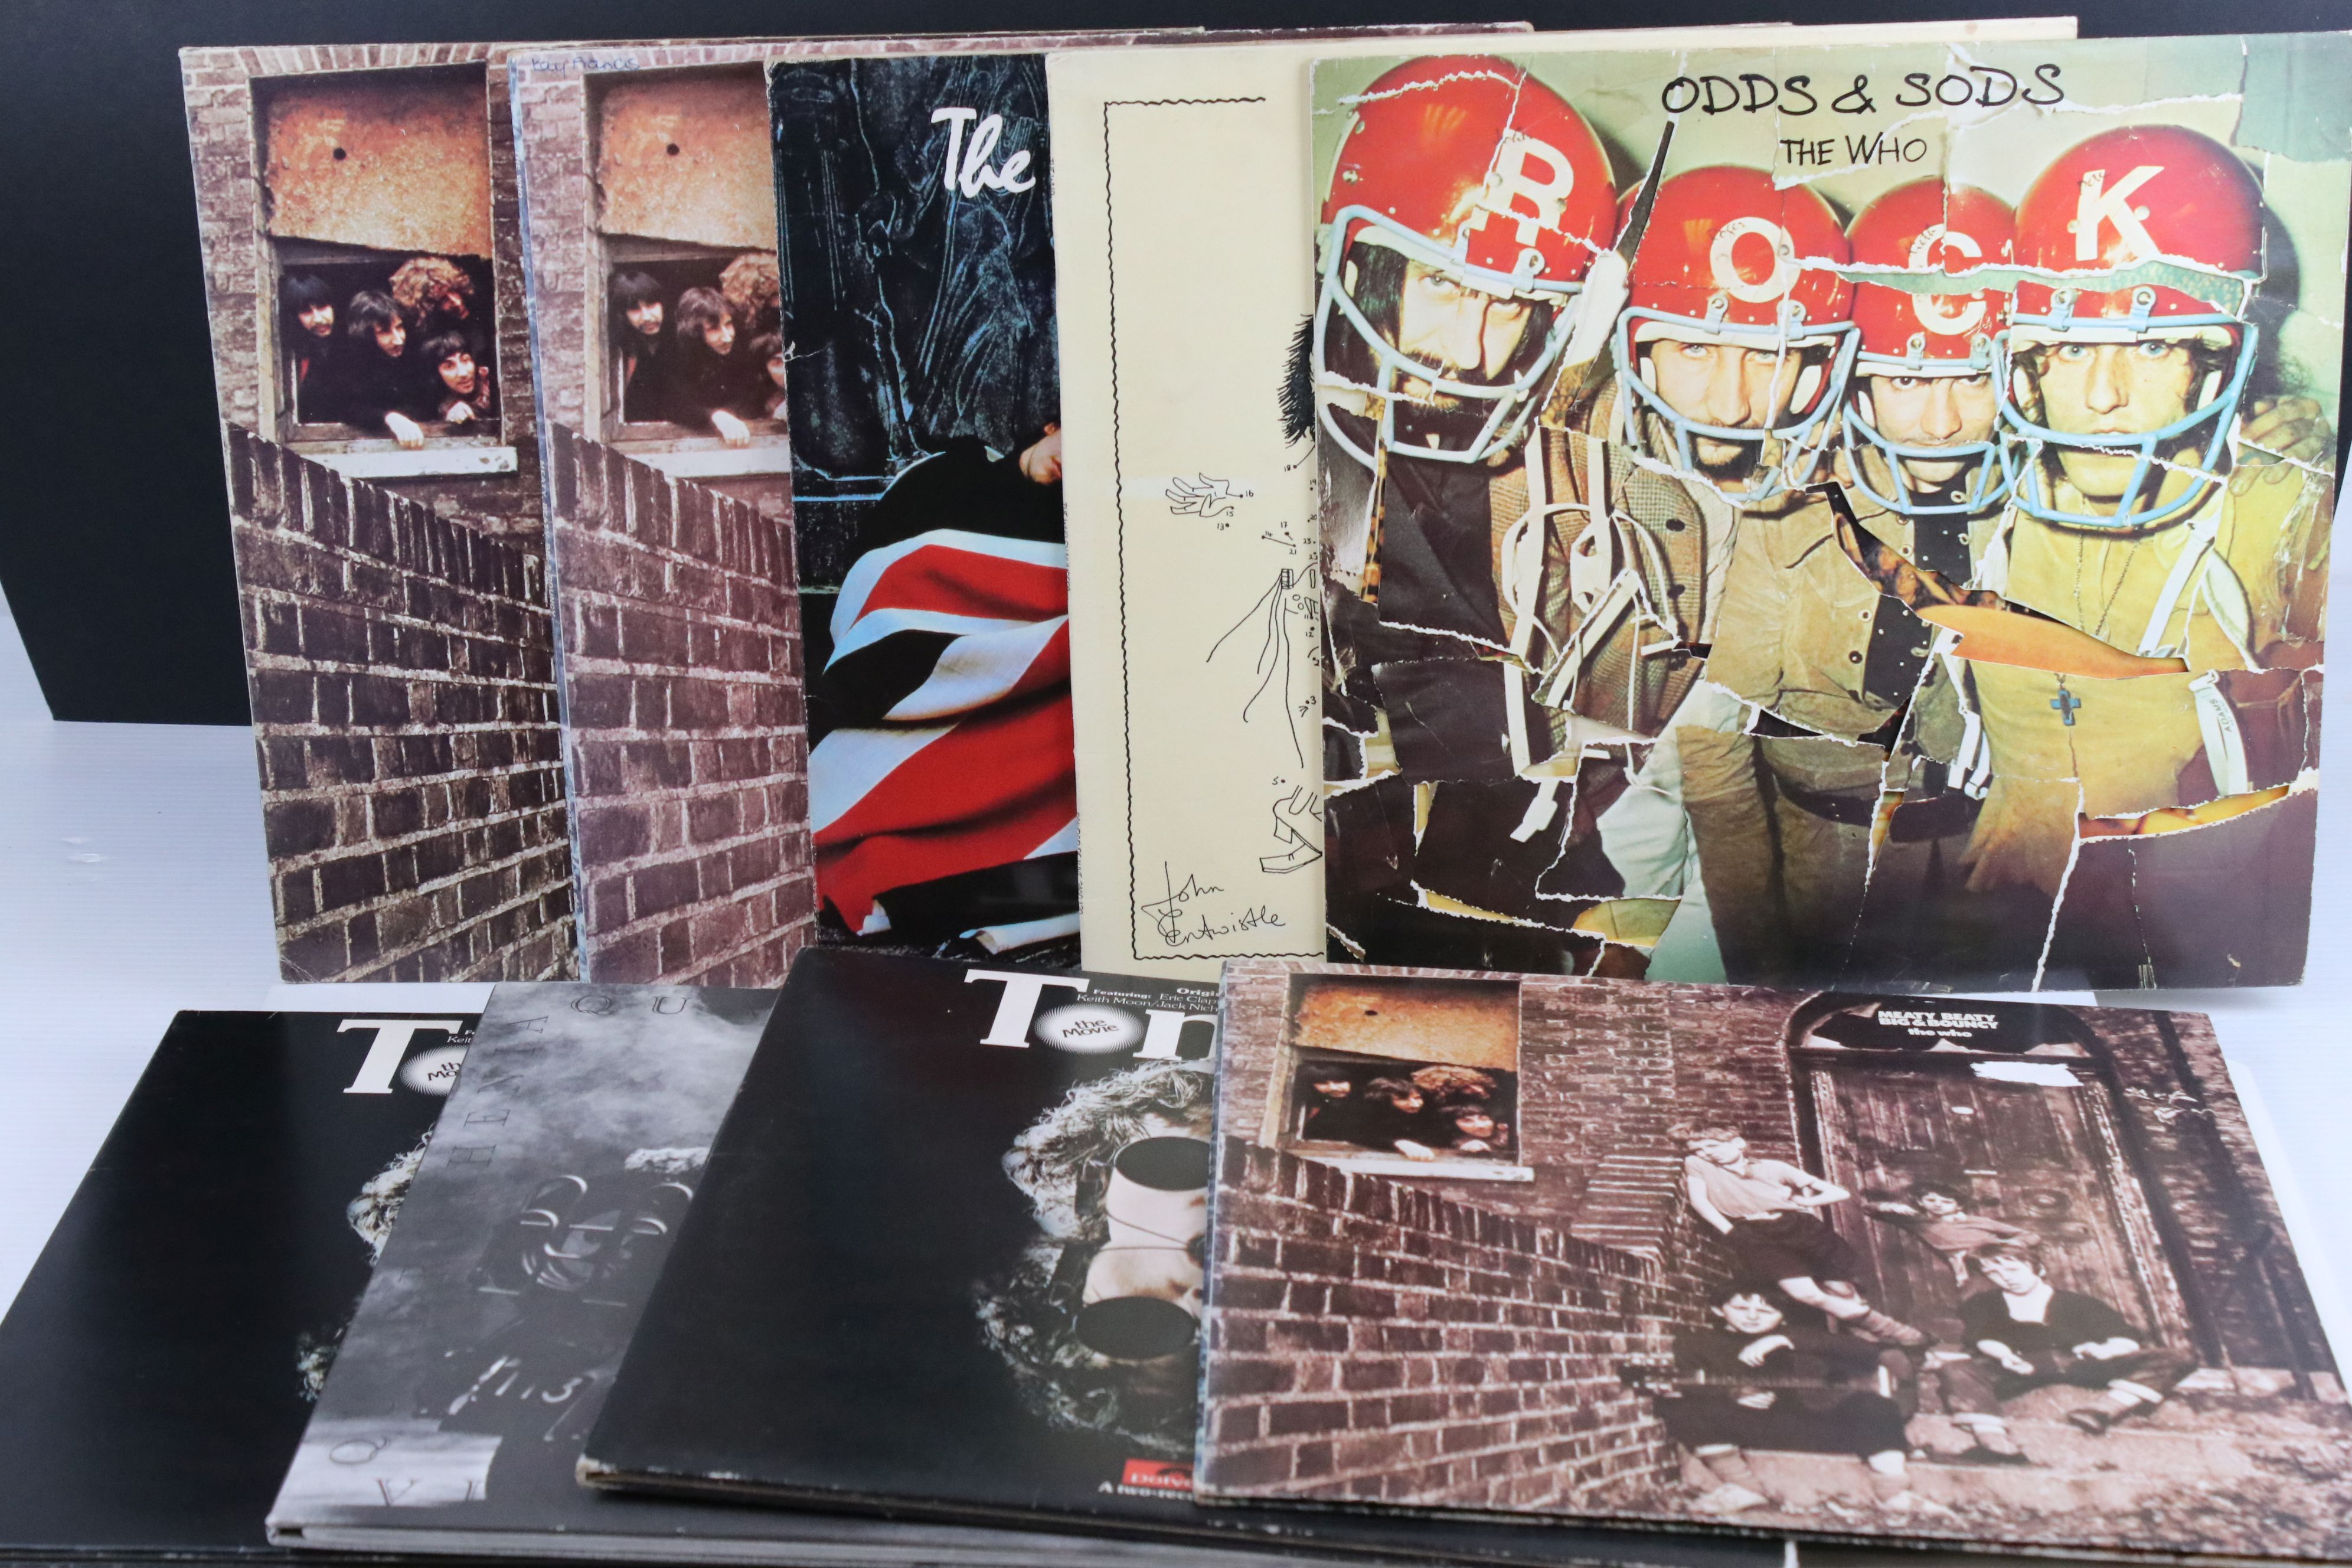 Vinyl - Nine The Who LPs to include Odds & Sods, By Numbers, The Kids Are Alright, 3 x Meaty Beaty